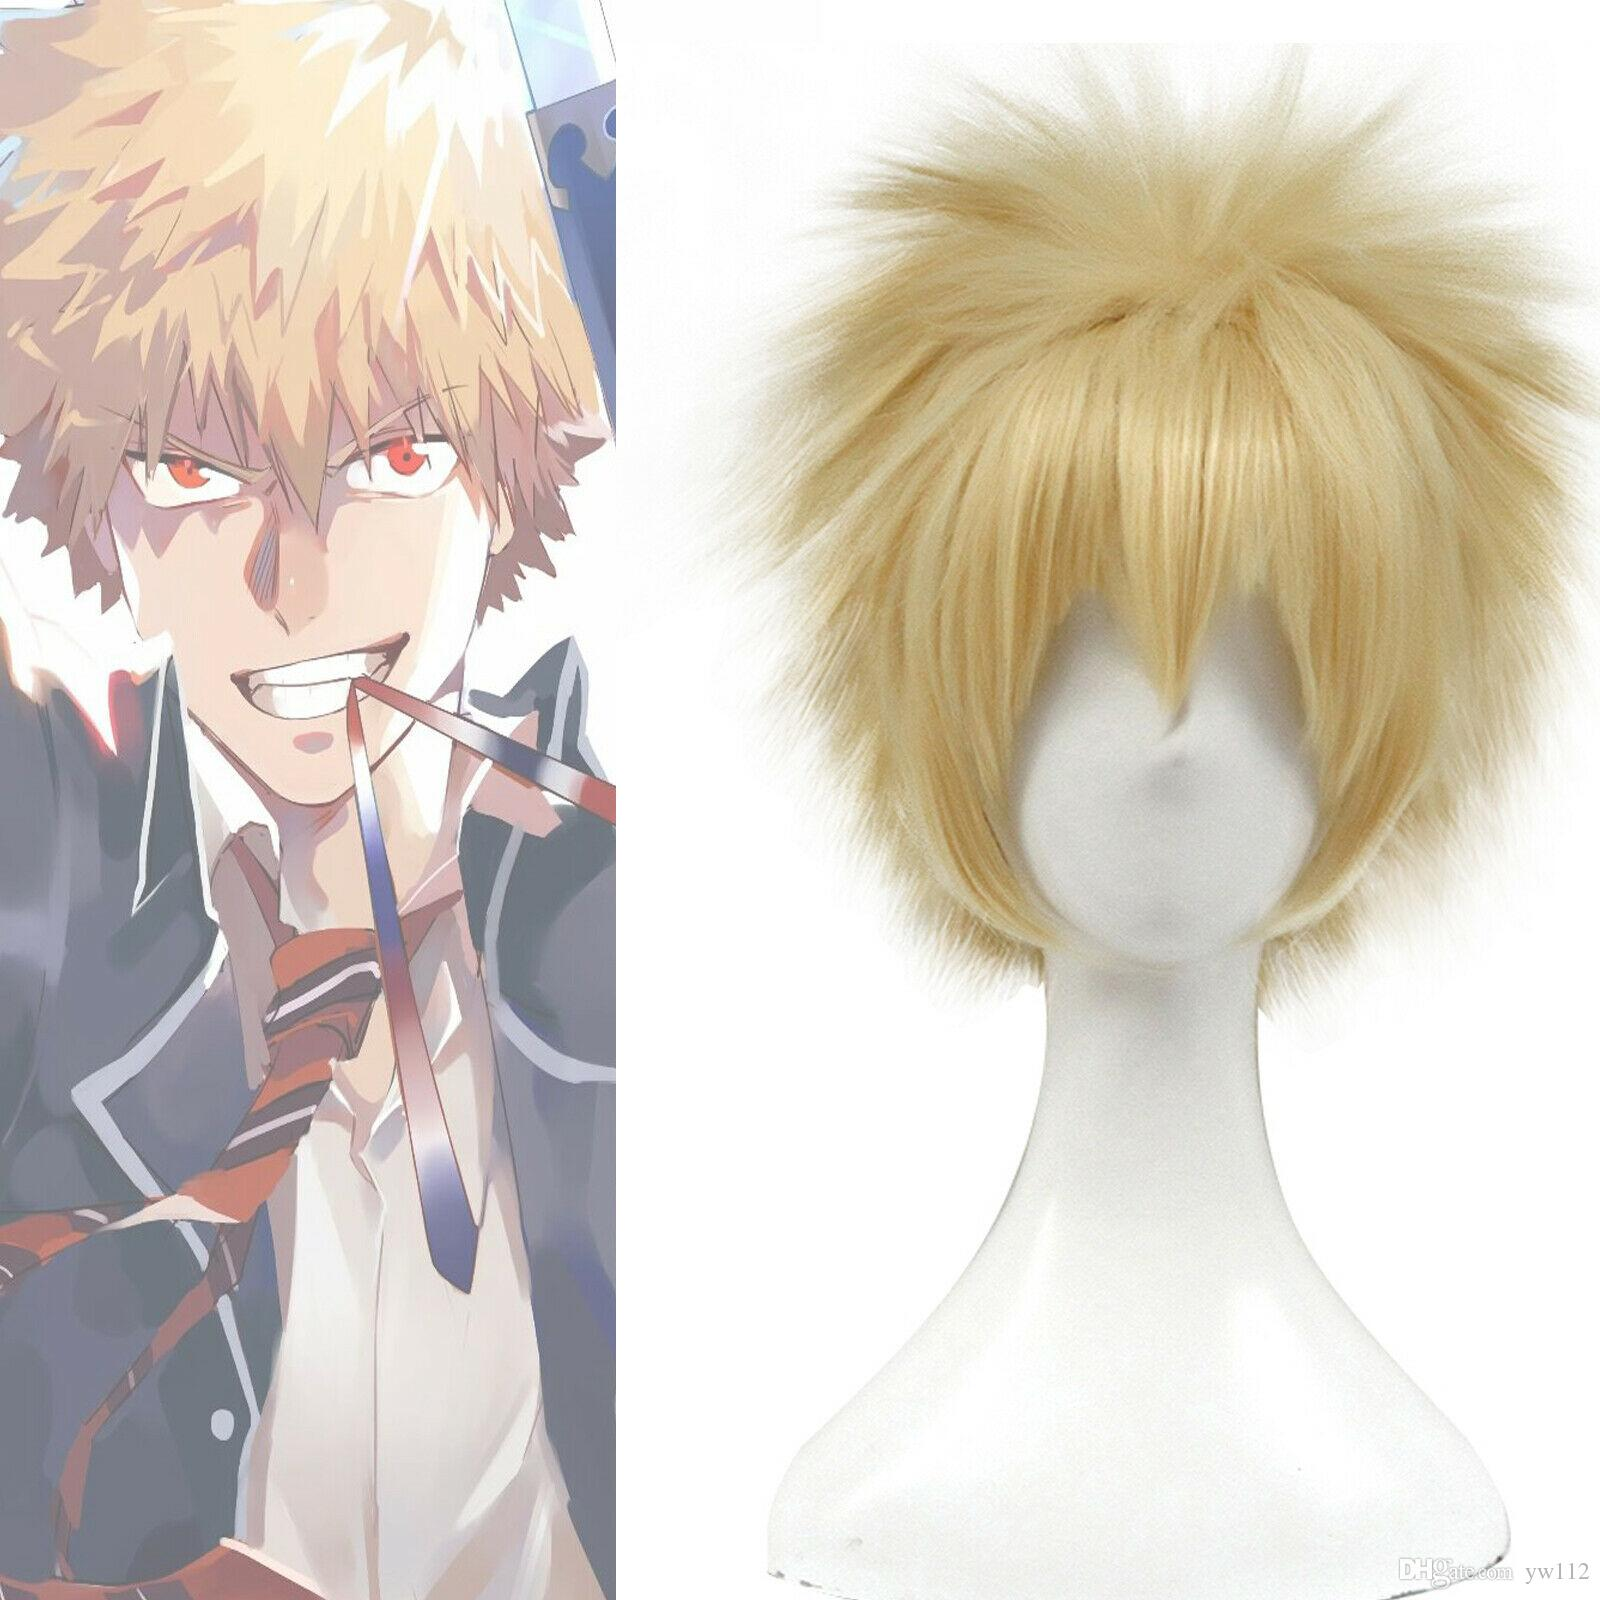 My Hero Academia Bakugo Katsuki Men Gold Blonde Short Spiky Hair Cosplay Wigs Lace Wigs With Bangs Red Hair Wigs From Yw112 10 13 Dhgate Com